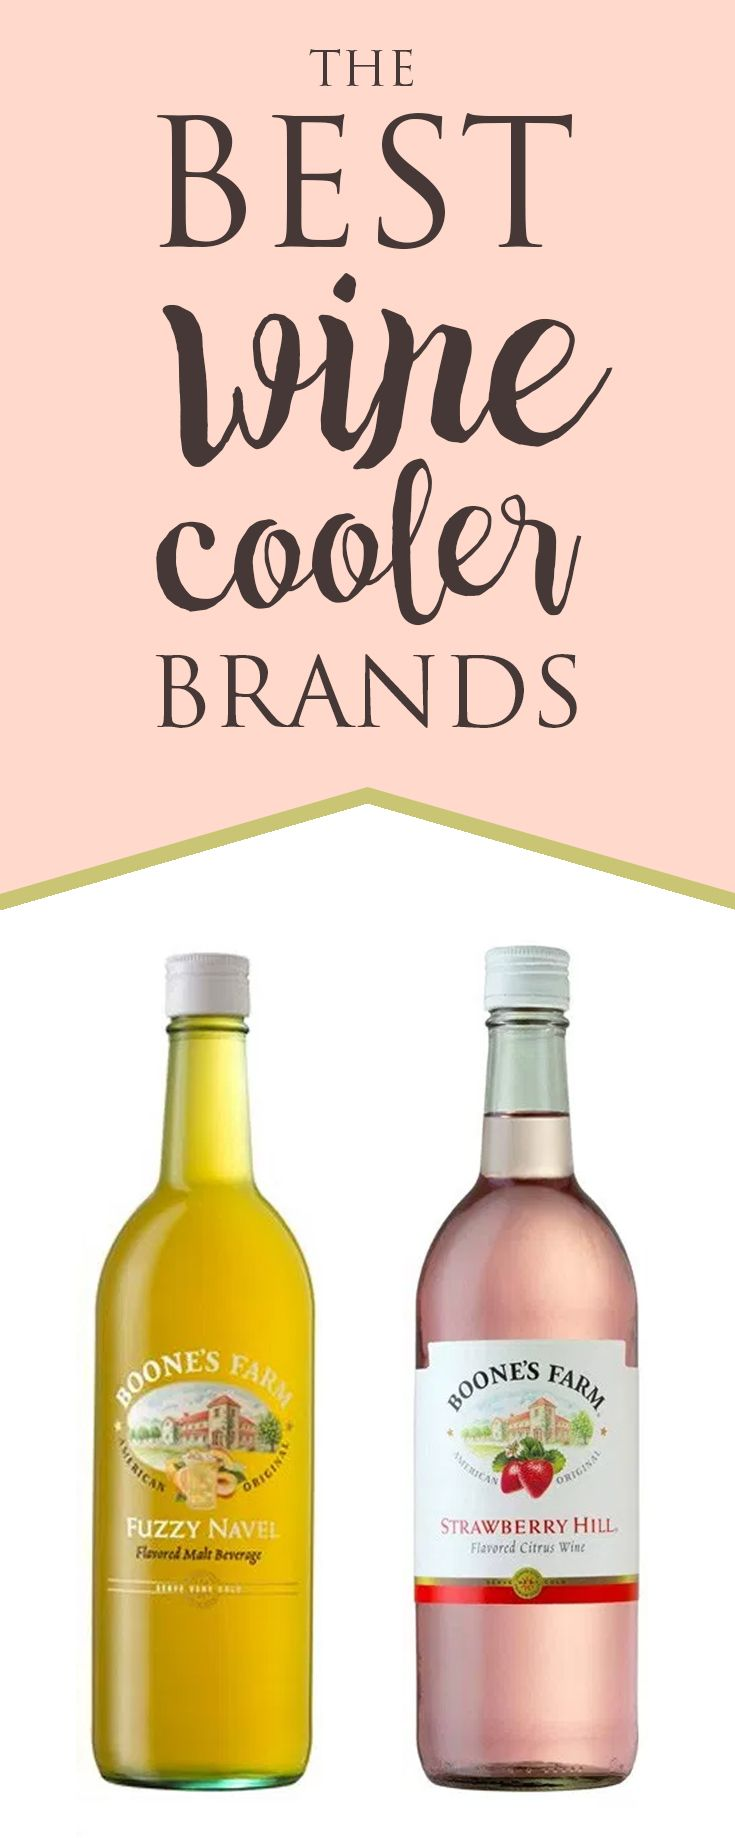 best 25 seagrams wine coolers ideas on pinterest wine coolers drinks wine cooler flavors and. Black Bedroom Furniture Sets. Home Design Ideas